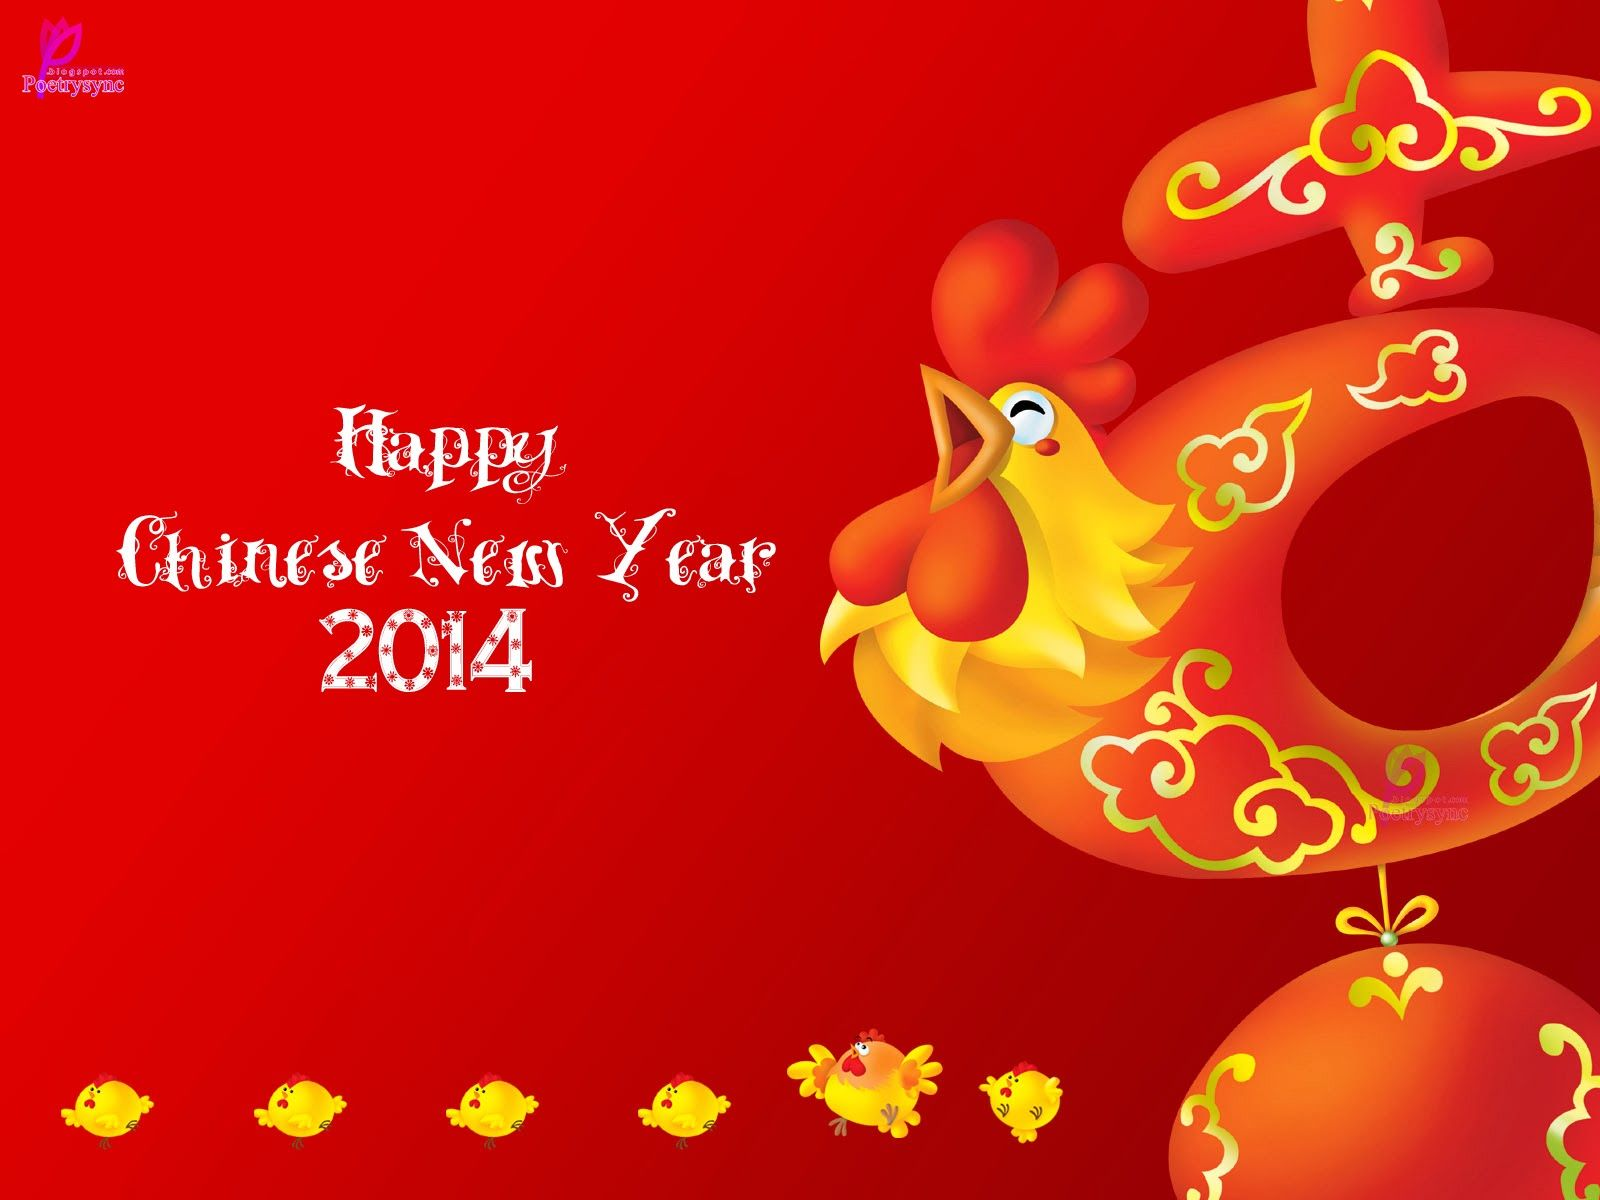 Happy Chinese New Year Wishes Image Card Happy Lunar & Tet